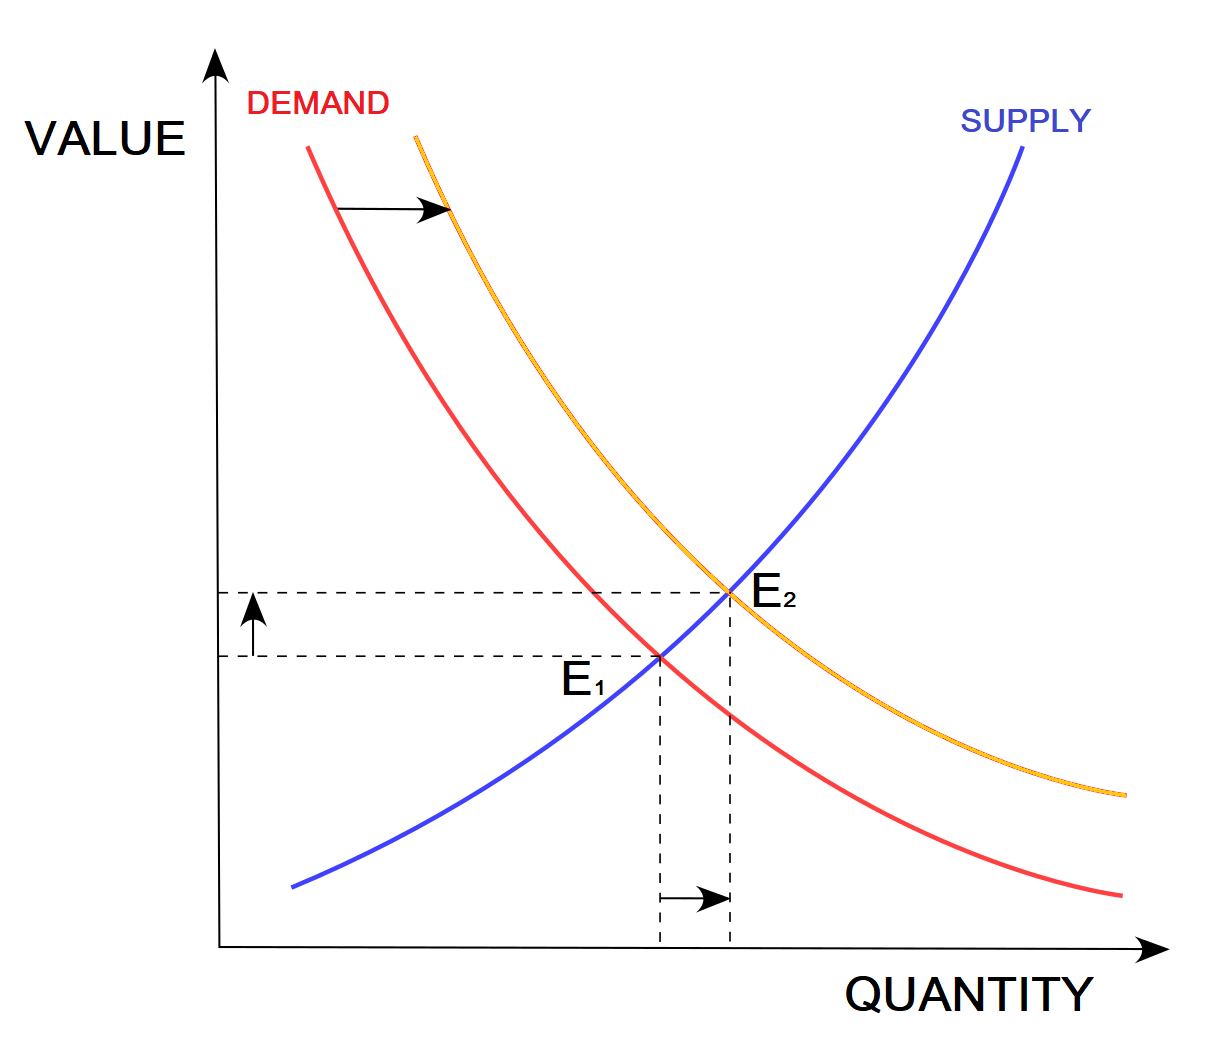 Where value and demand cross